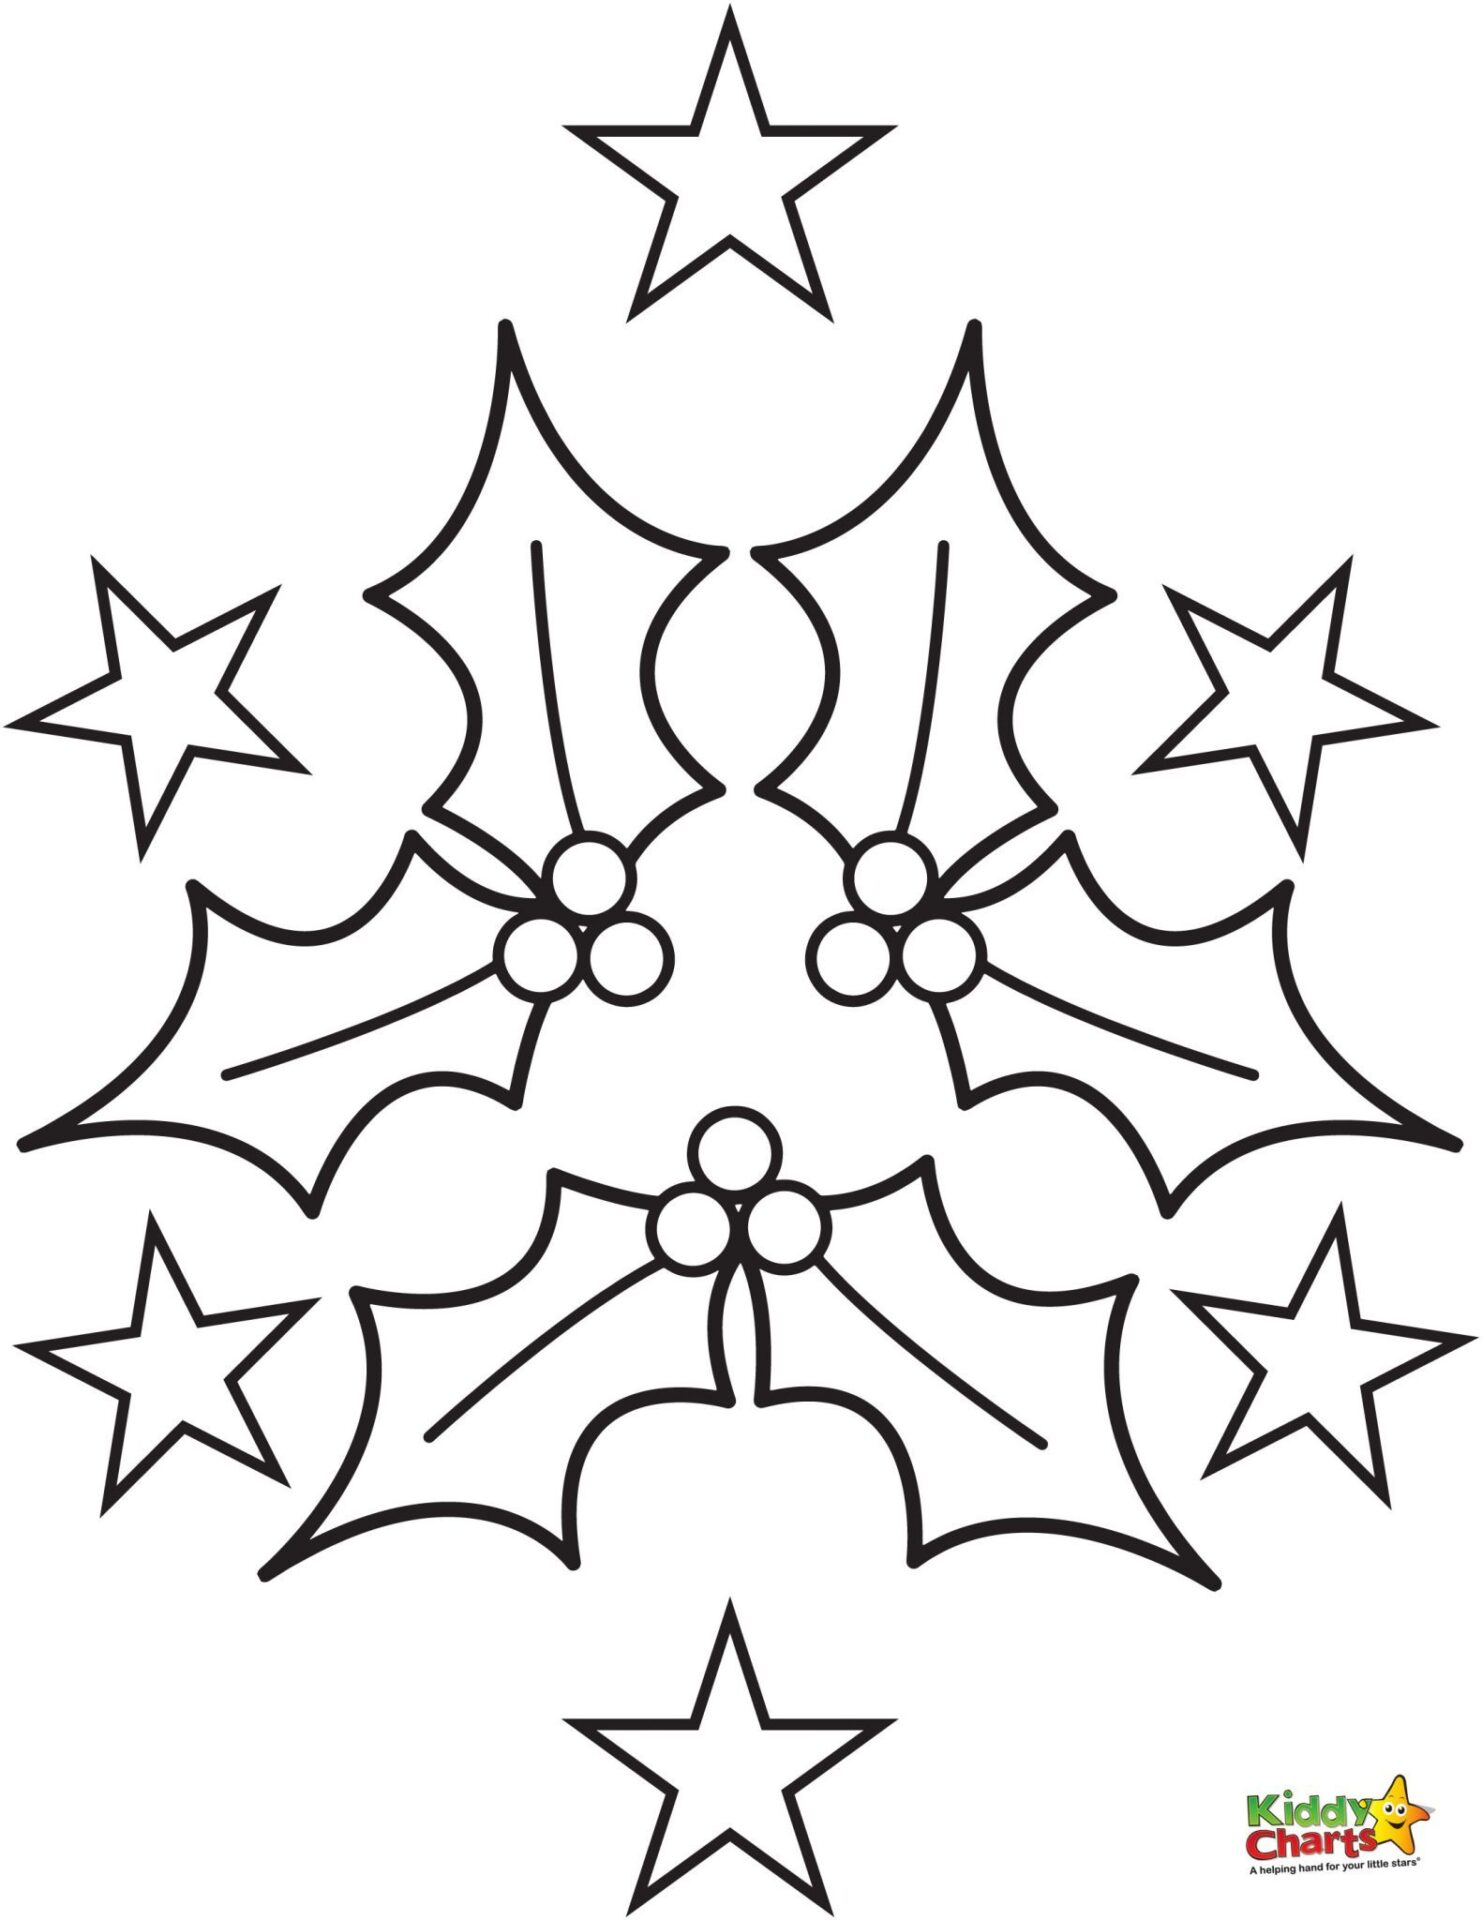 Adult Cute Holly Coloring Page Gallery Images top holly coloring pages images